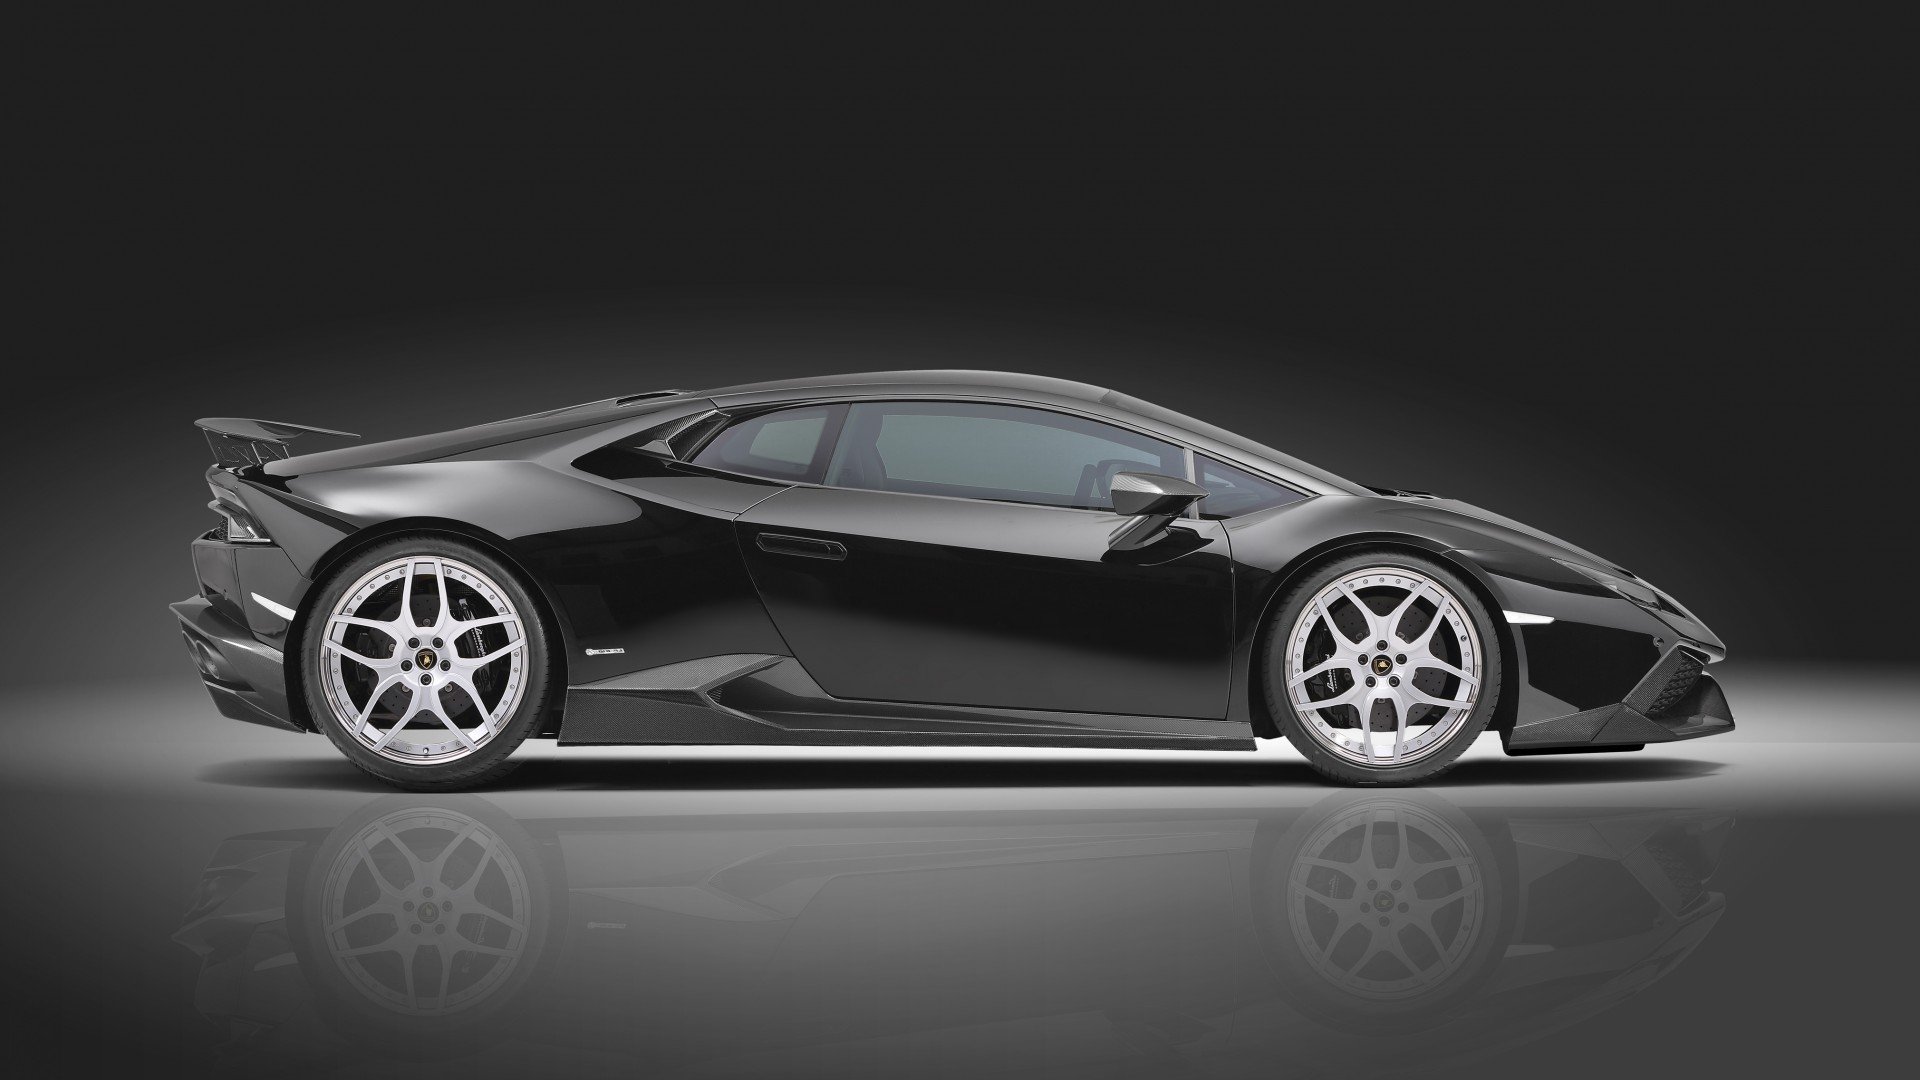 Wallpaper Lamborghini Huracan Lp610 4 Supercar Black